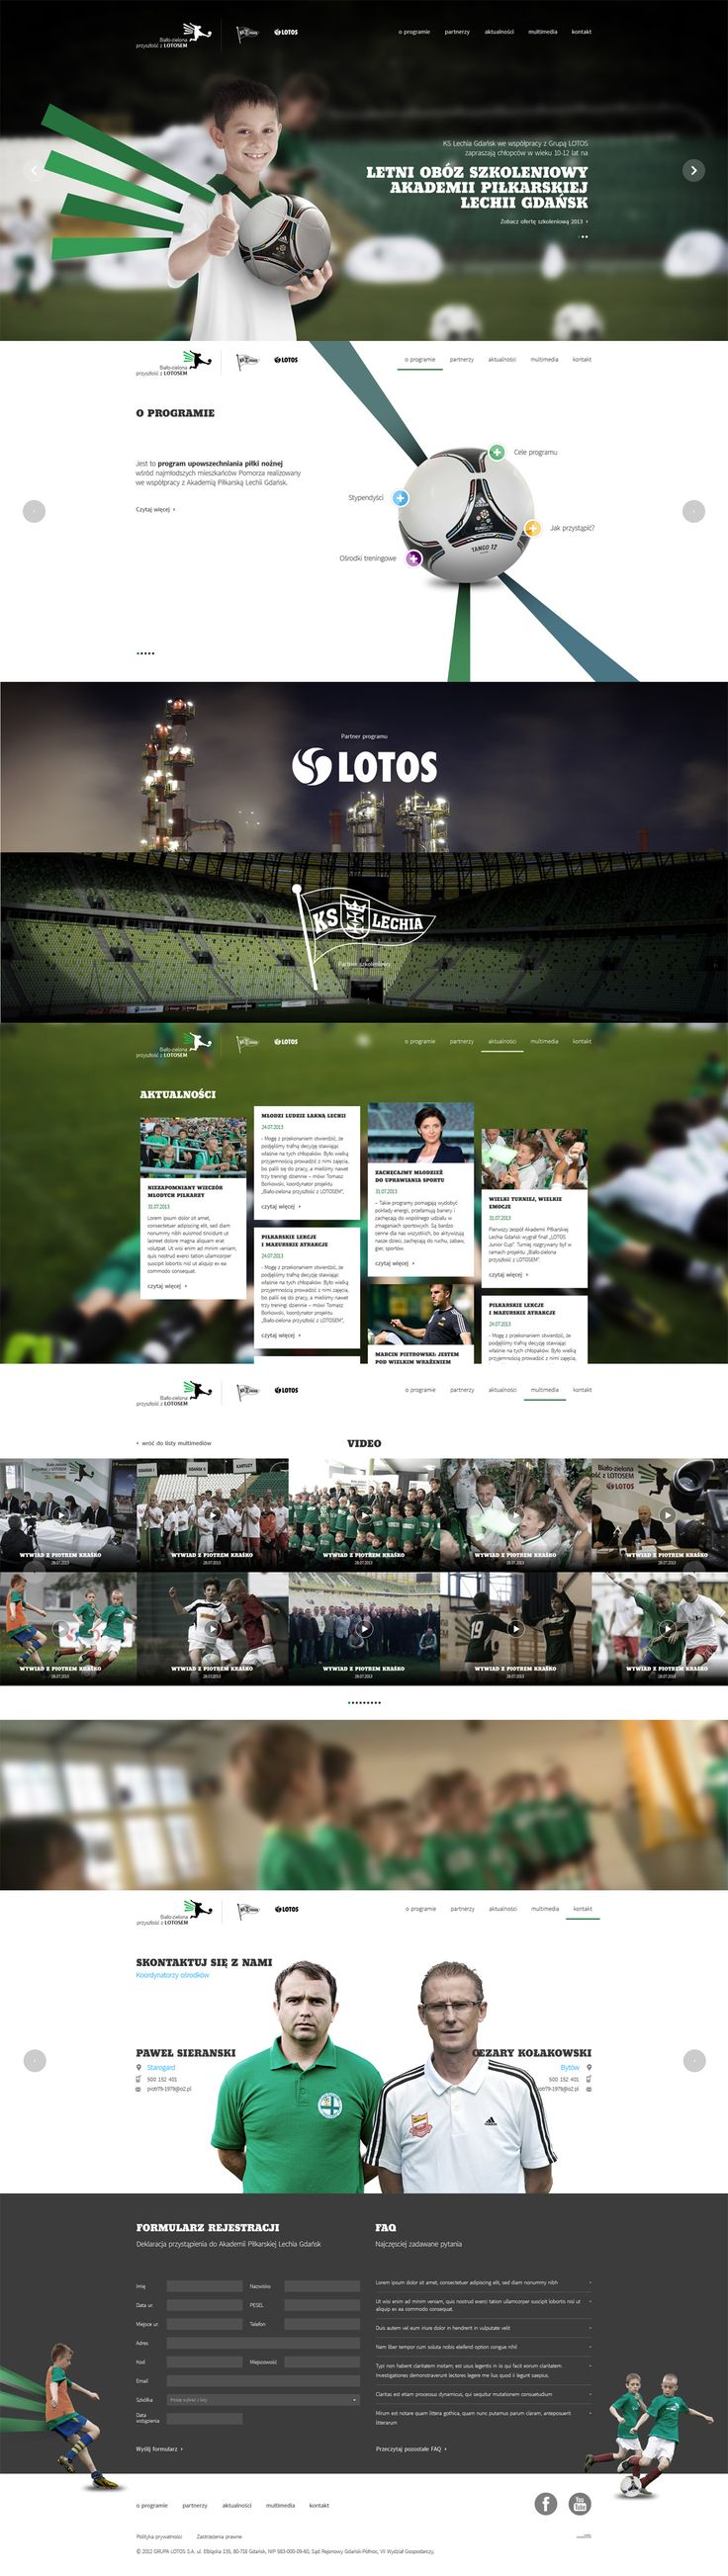 Big images and lots of parallax scrolling in this promotional one pager for 'LOTOS Young Footballers'.